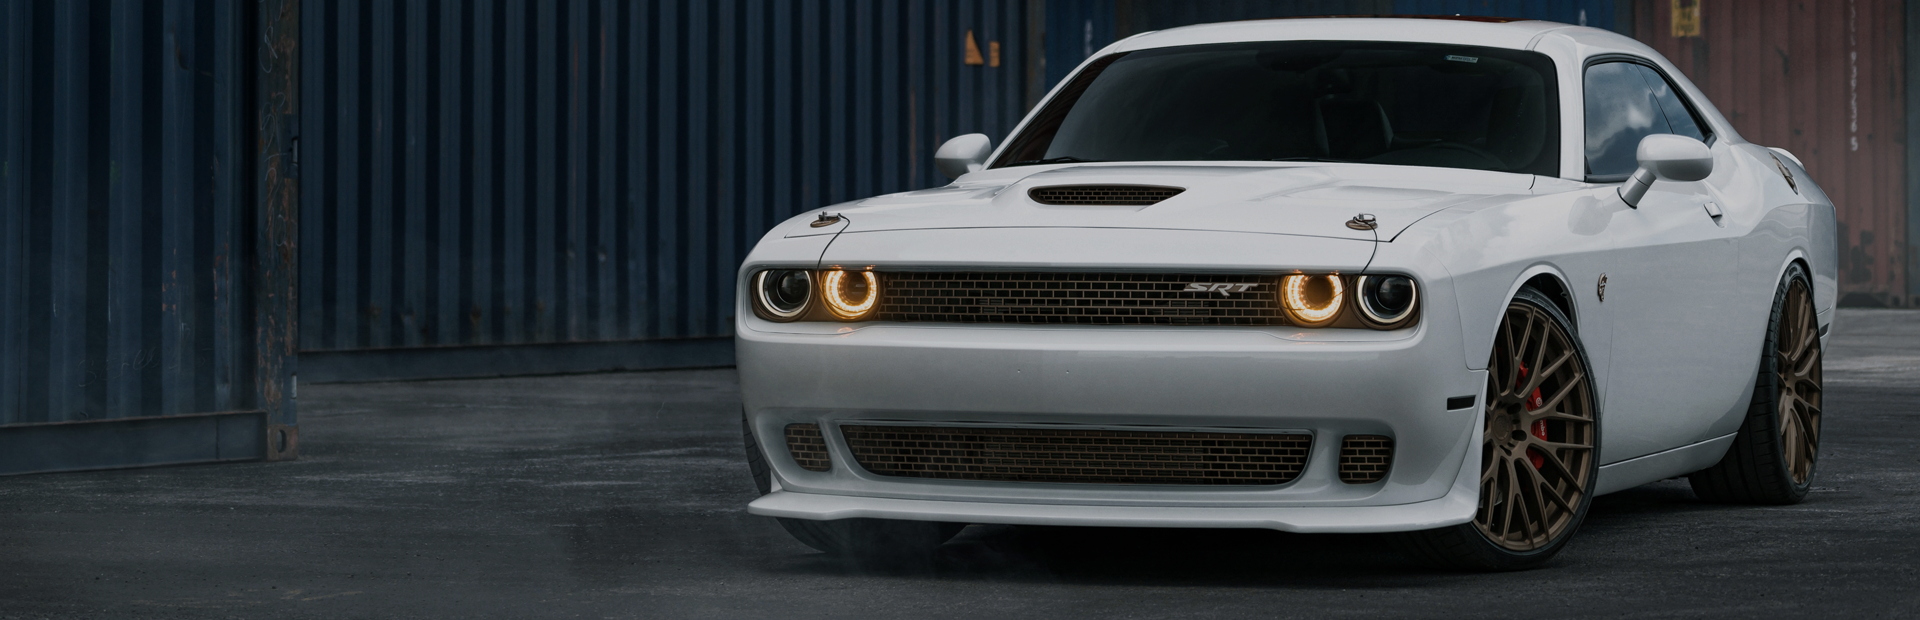 Dodge Performance Parts >> Just Bolt On Performance Parts American Muscle Cars And